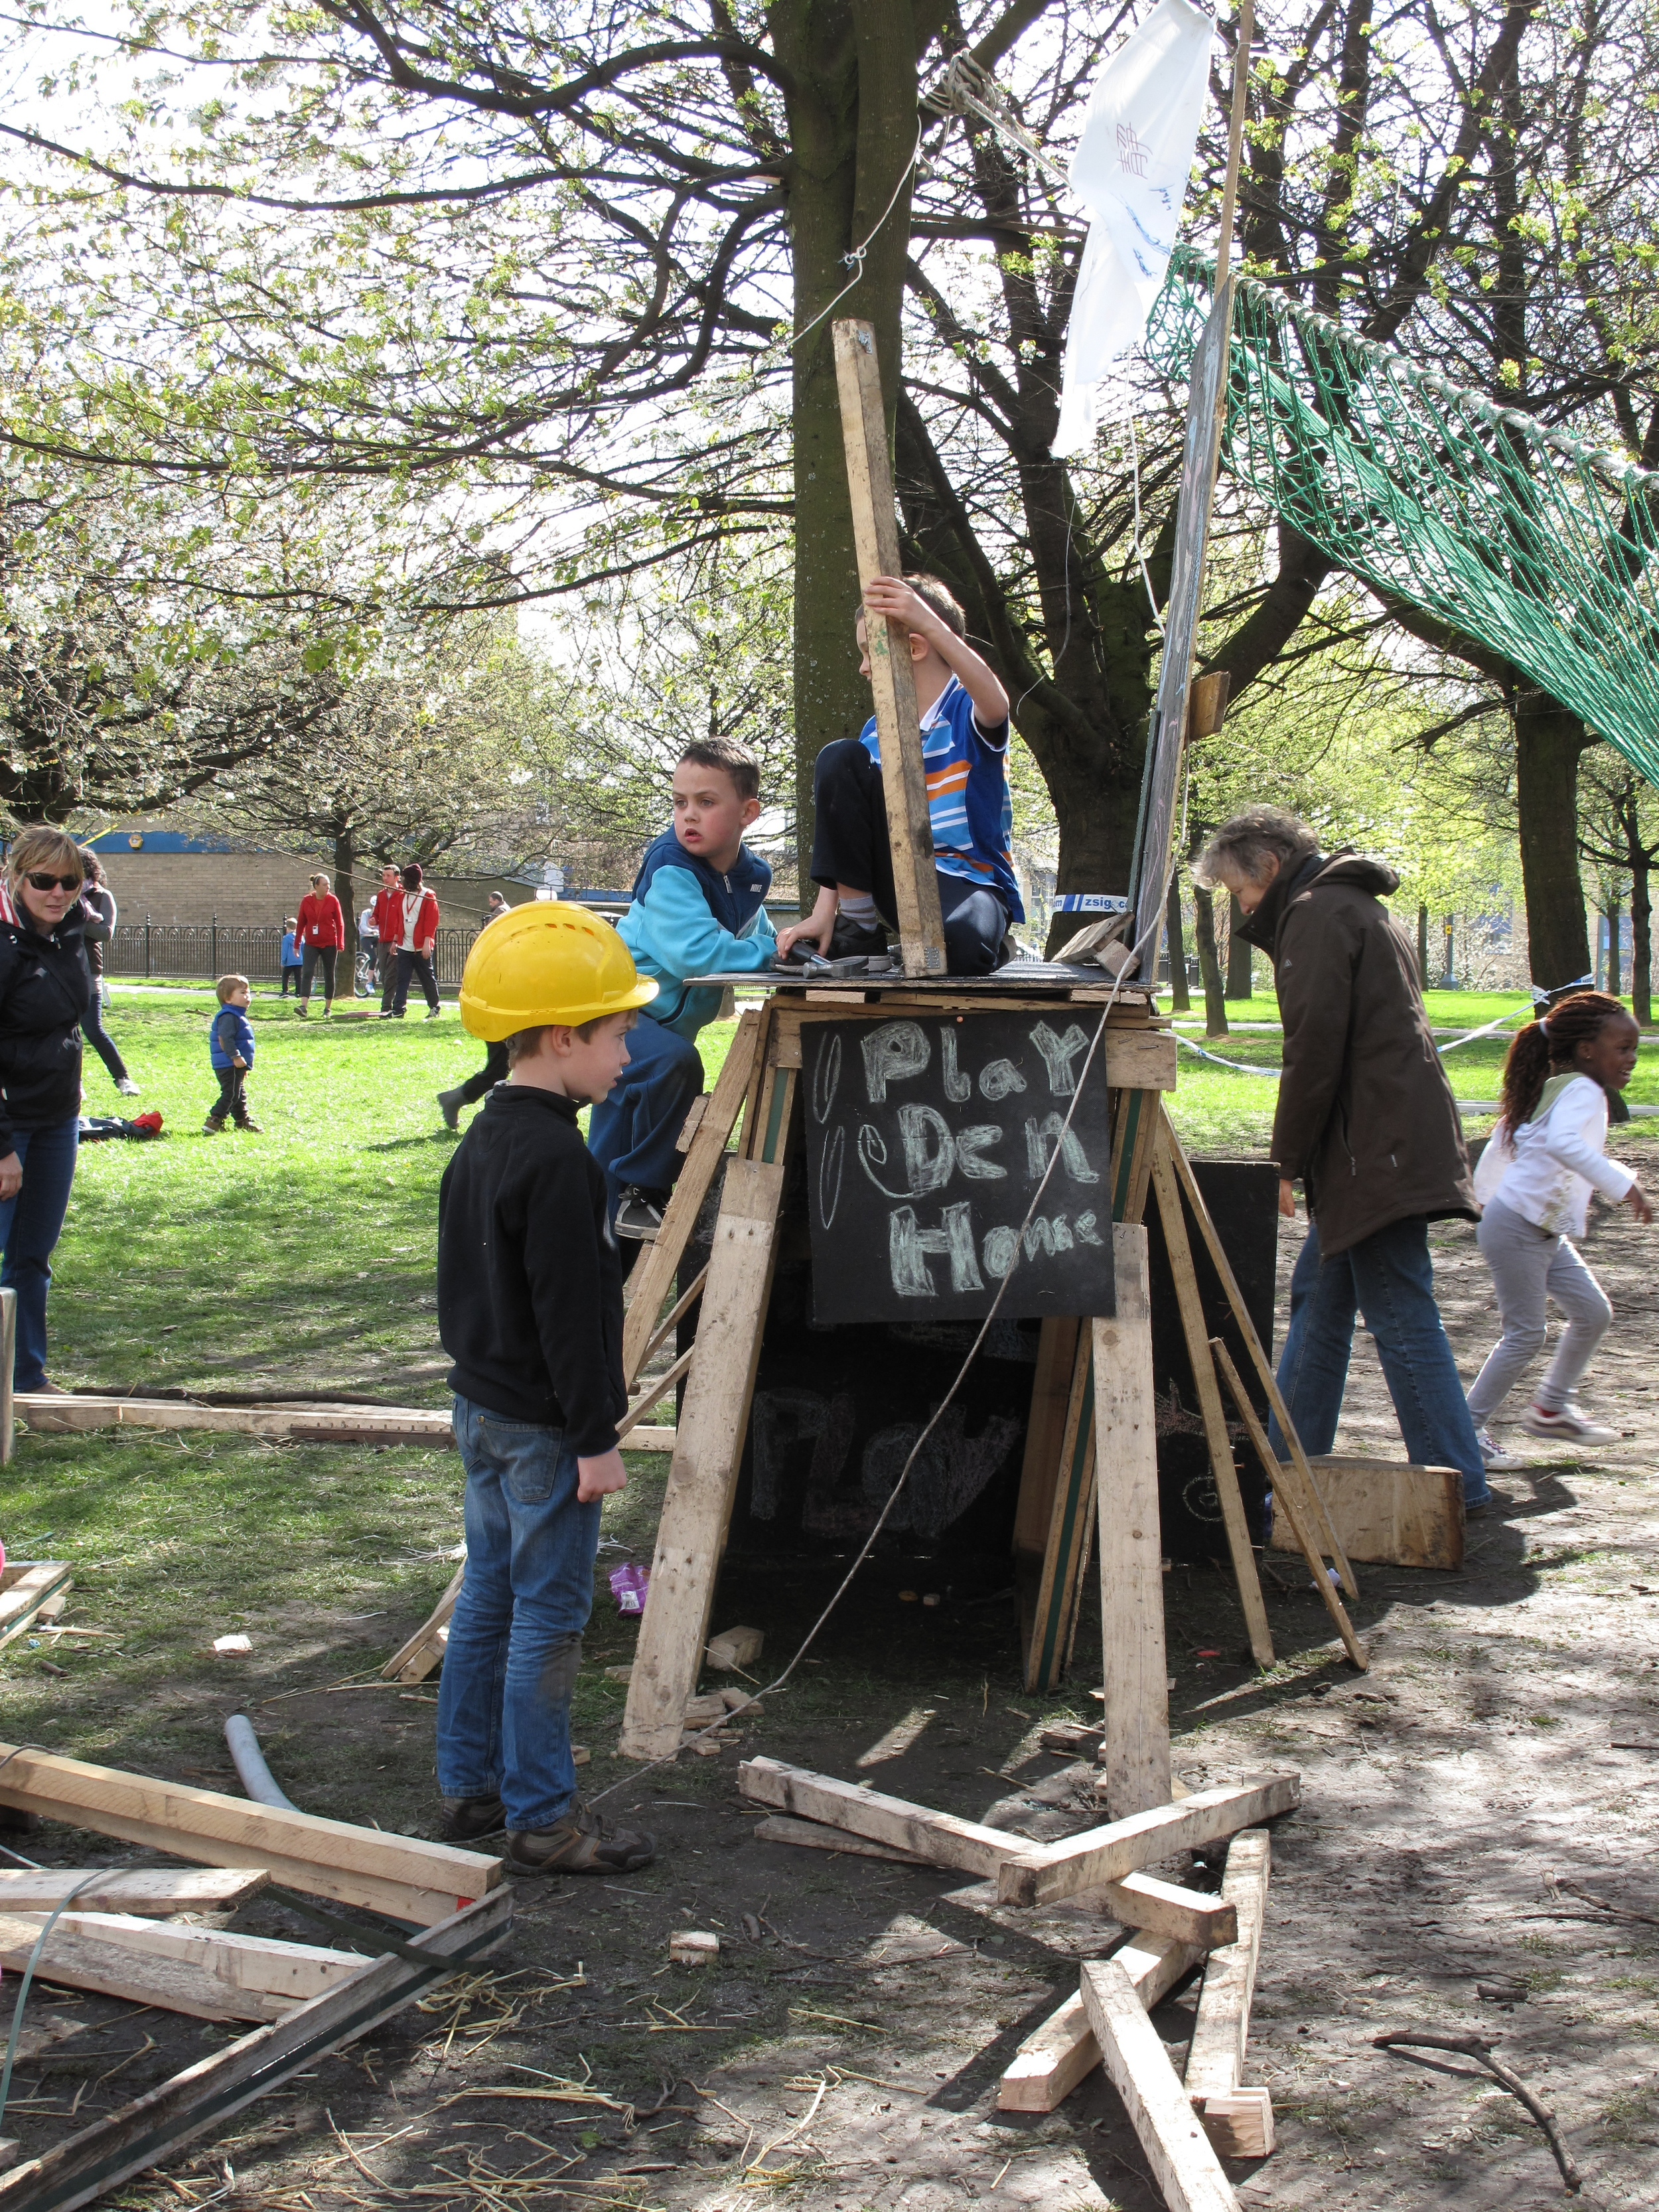 'Baltic Street Adventure Playground', 2014 - ongoing. Image courtesy of Assemble.